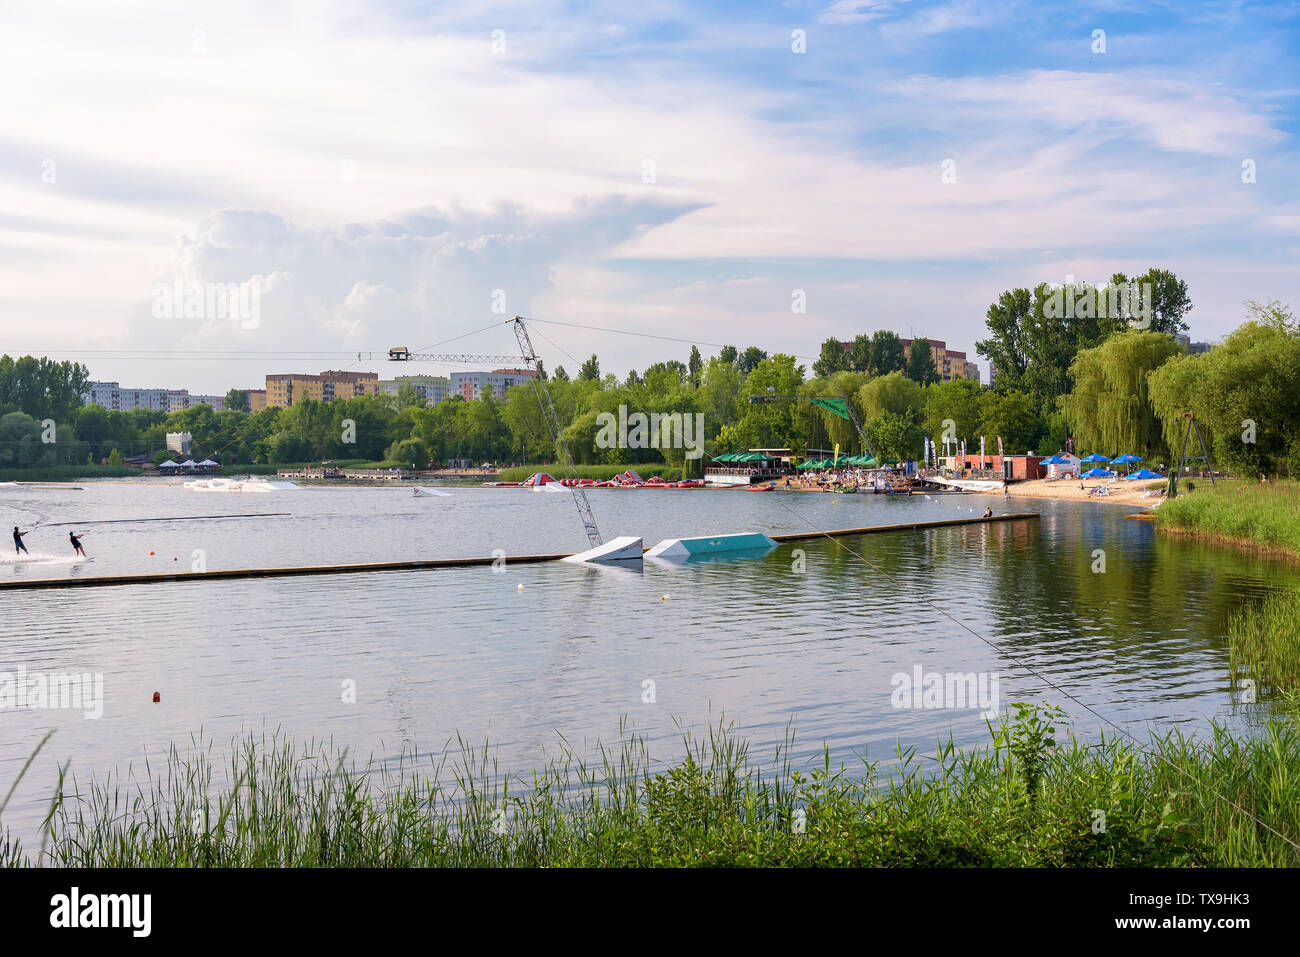 Sosnowiec, Poland - June 19, 2019: People use wakeboard on Wake Zone Stawiki water park Stock Photo